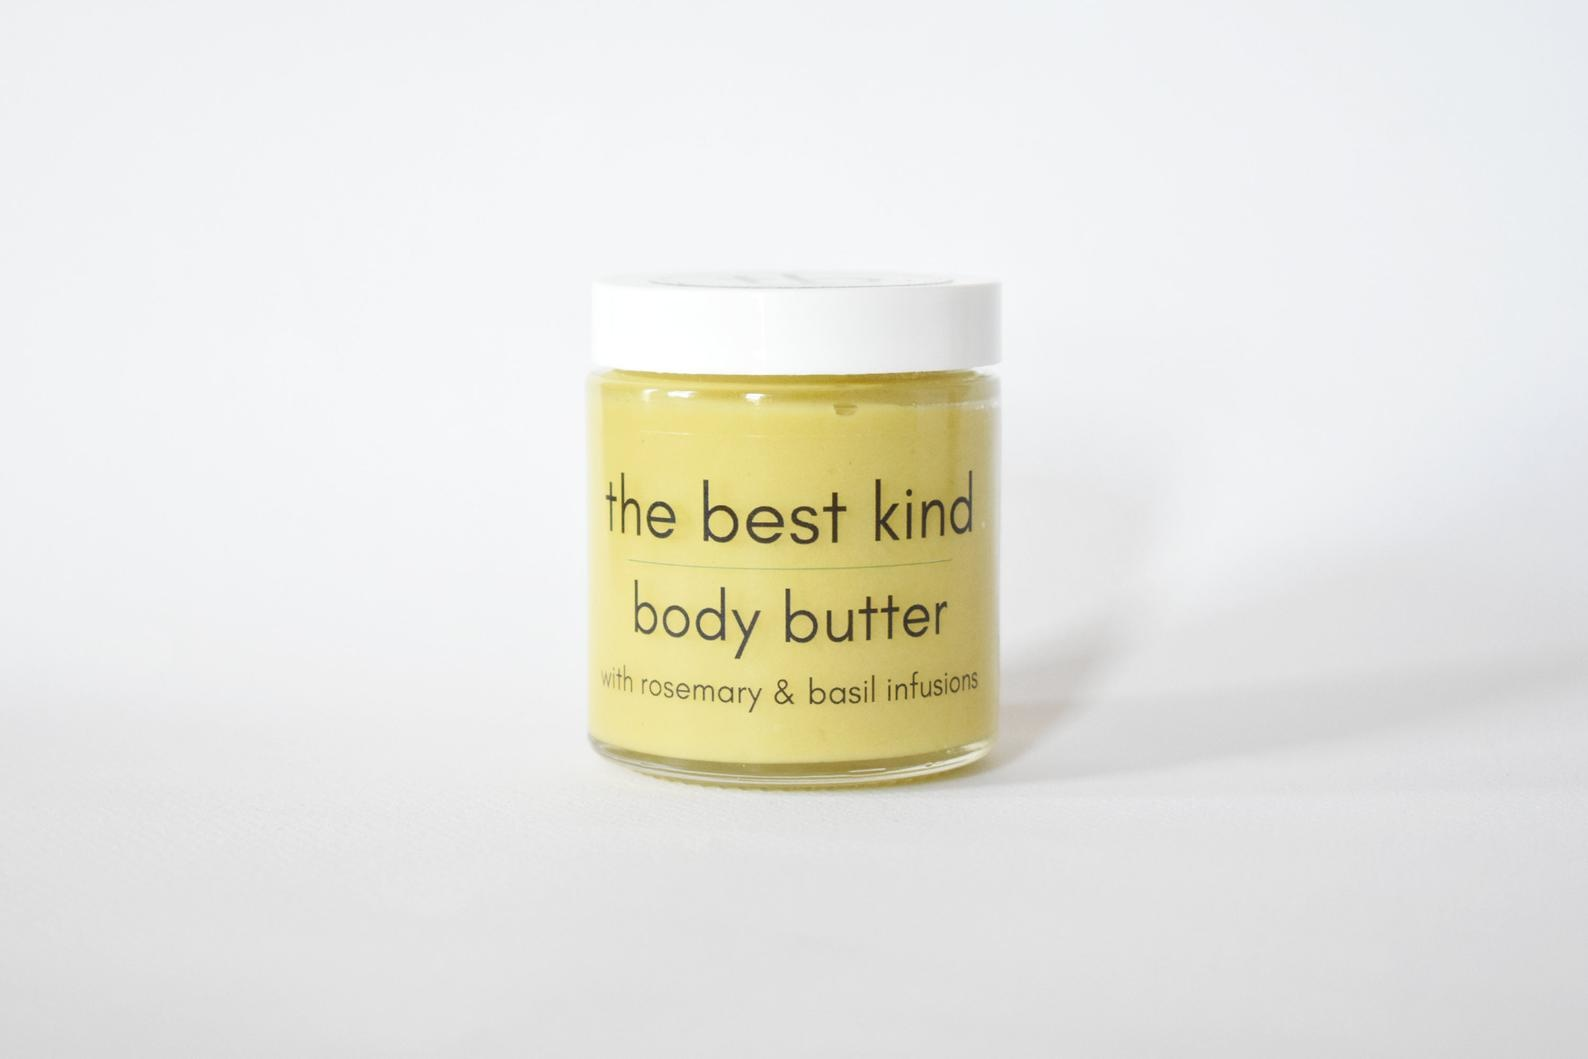 The Best Kind Body Butter 1 Oz.